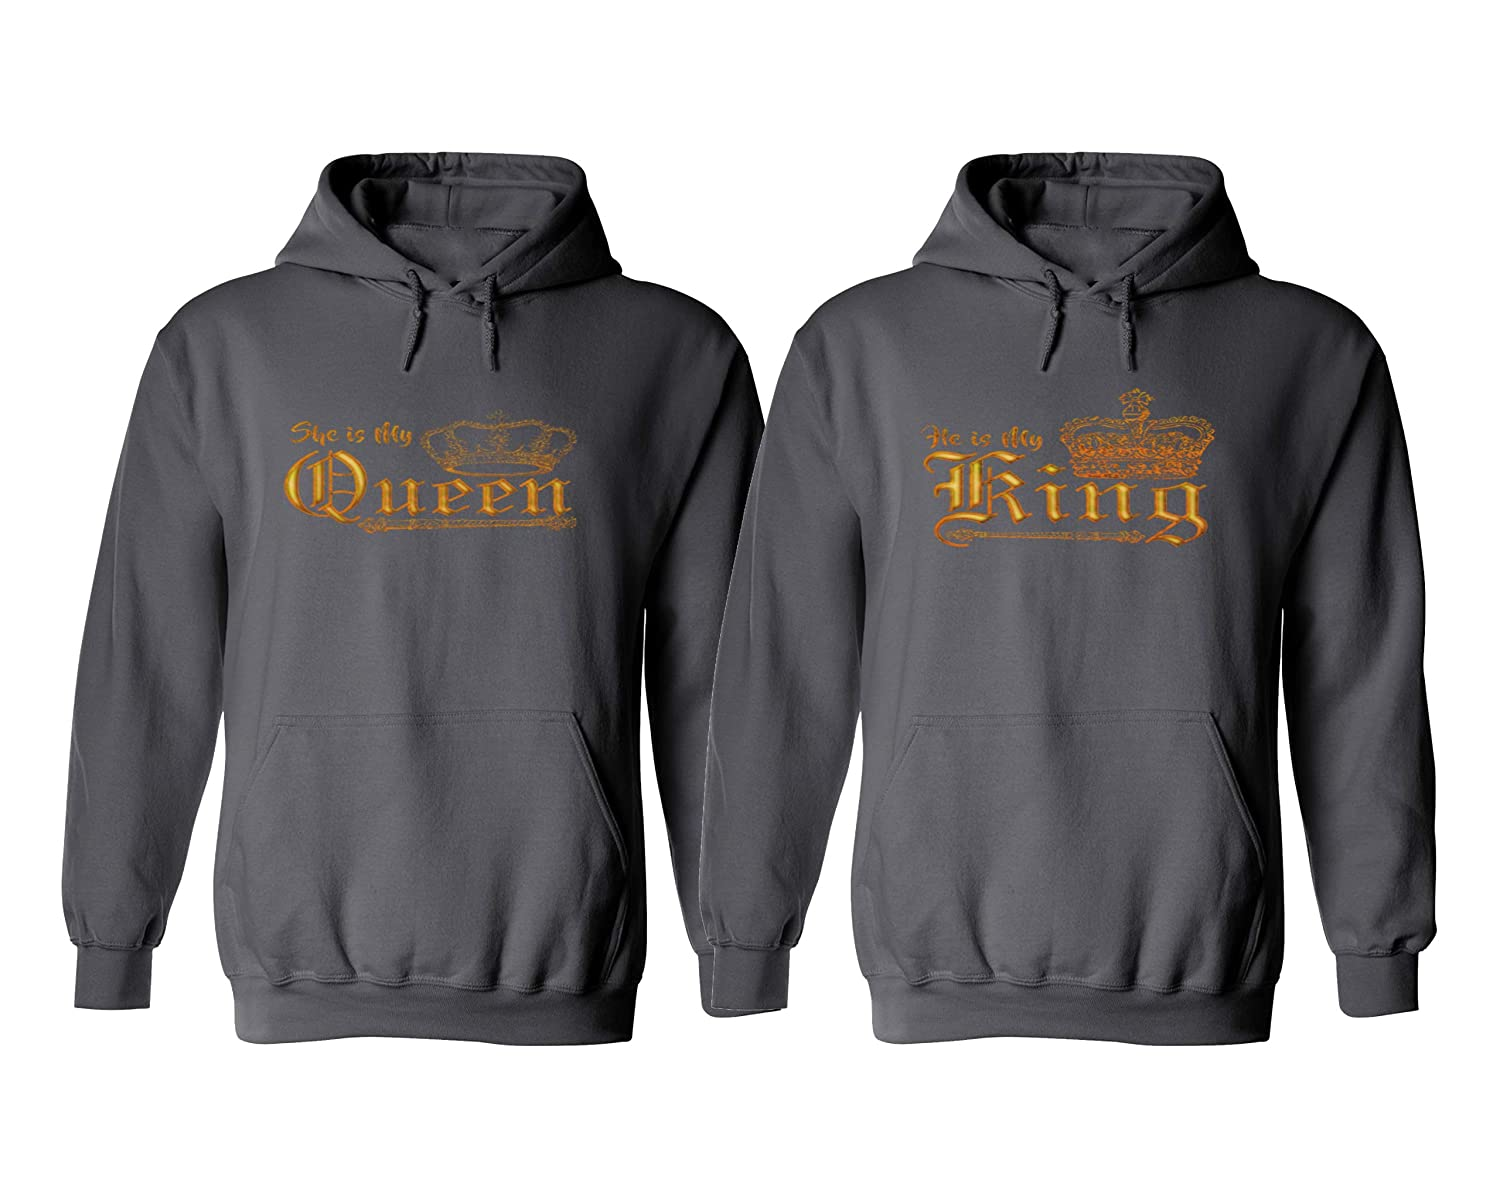 Charcoal Sweatery King and Queen Hoodies  King Crown Queen Crown Couples Hoodies  His and Hers Couples Gifts